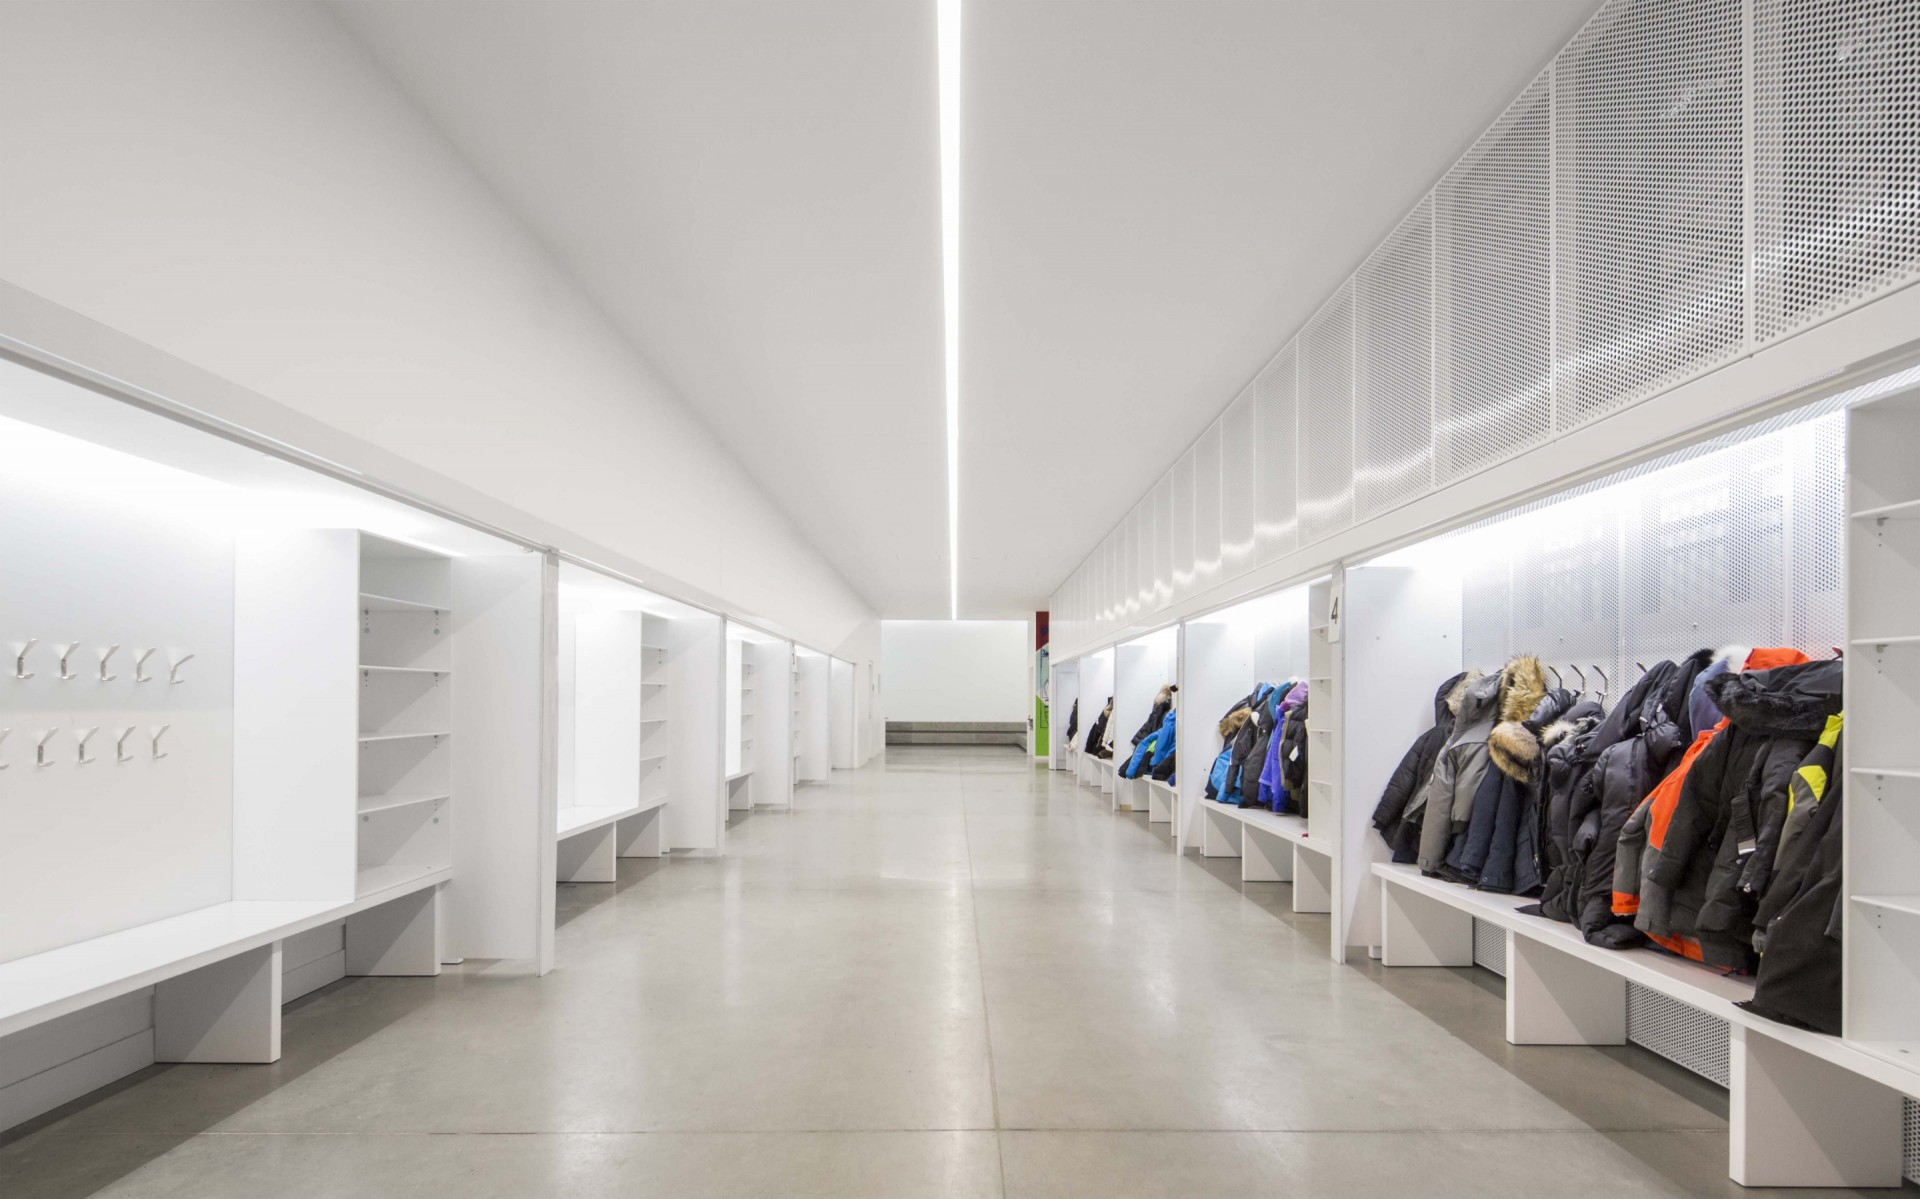 Lumenline Surface Ceiling Mounted luminaires were also used in the student locker room downstairs, effortlessly integrating to the ceiling and evenly lighting the space.  – Stéphane Brügger